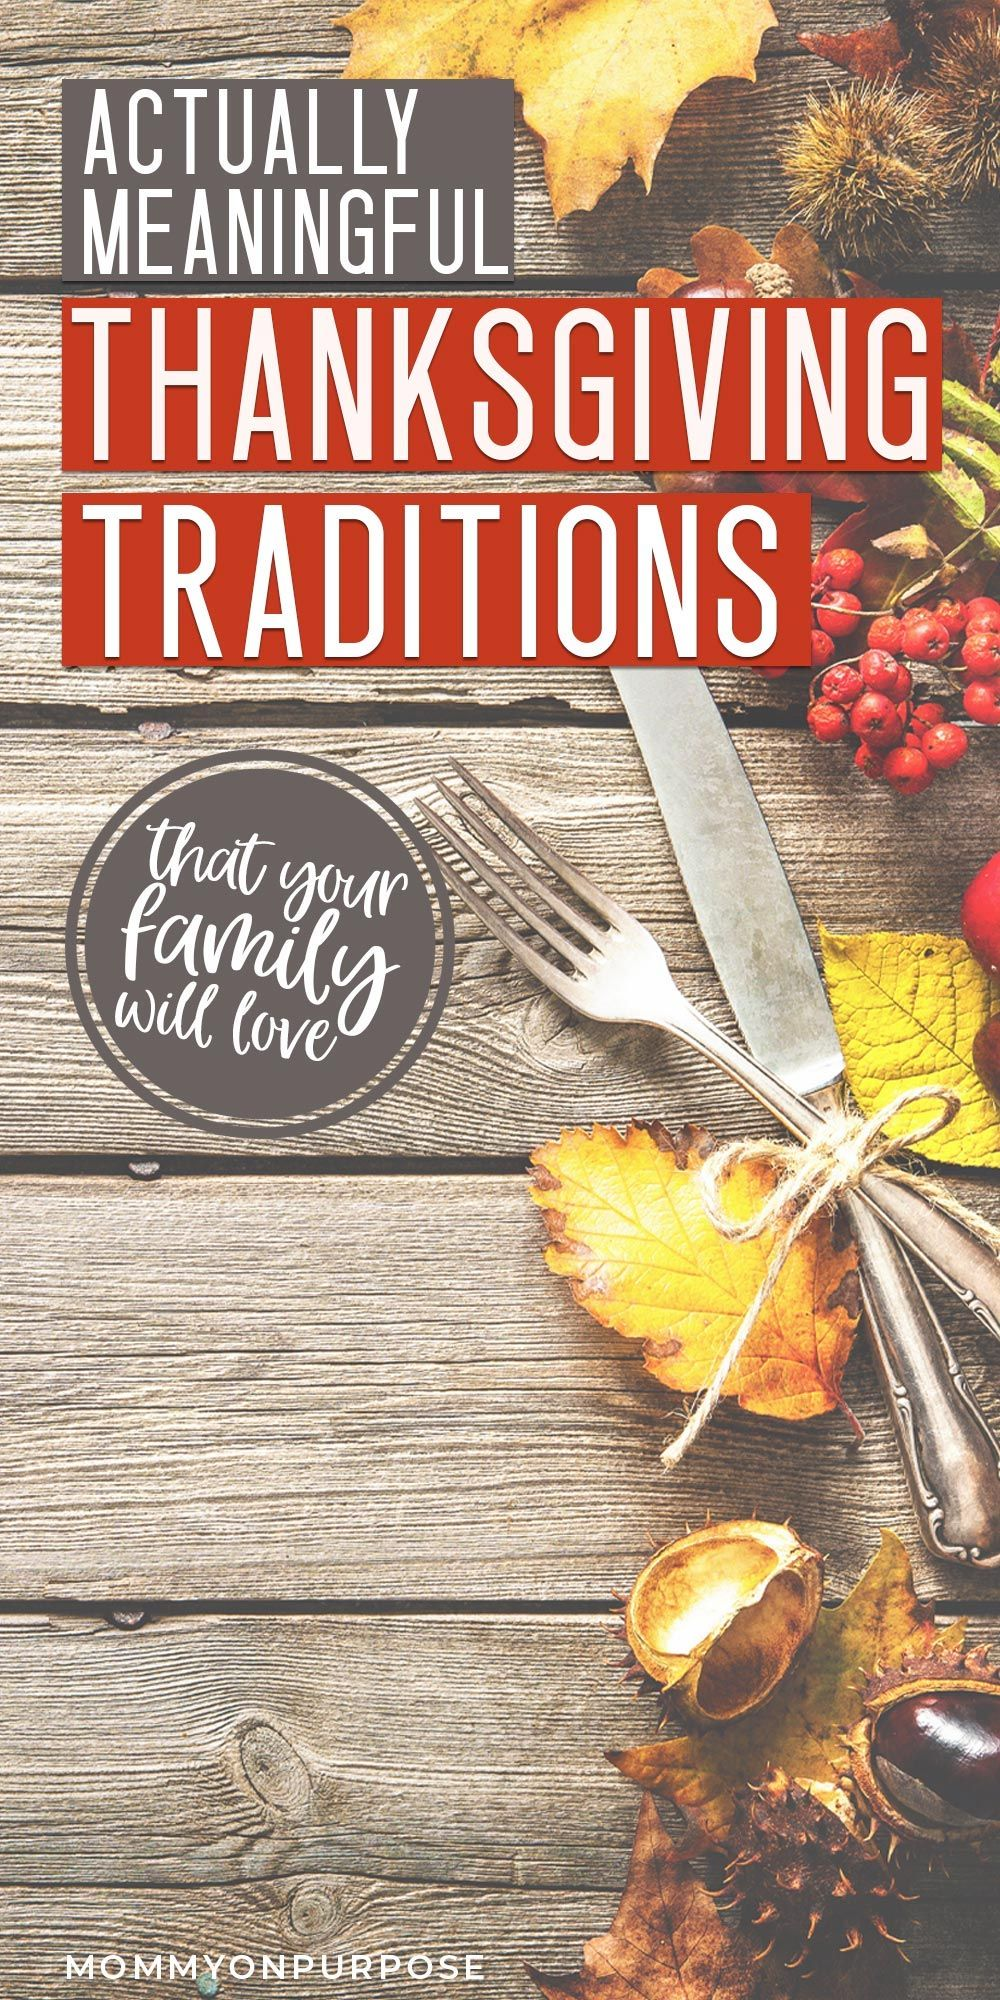 Thanksgiving tradition ideas to use this year - fun for the whole family!